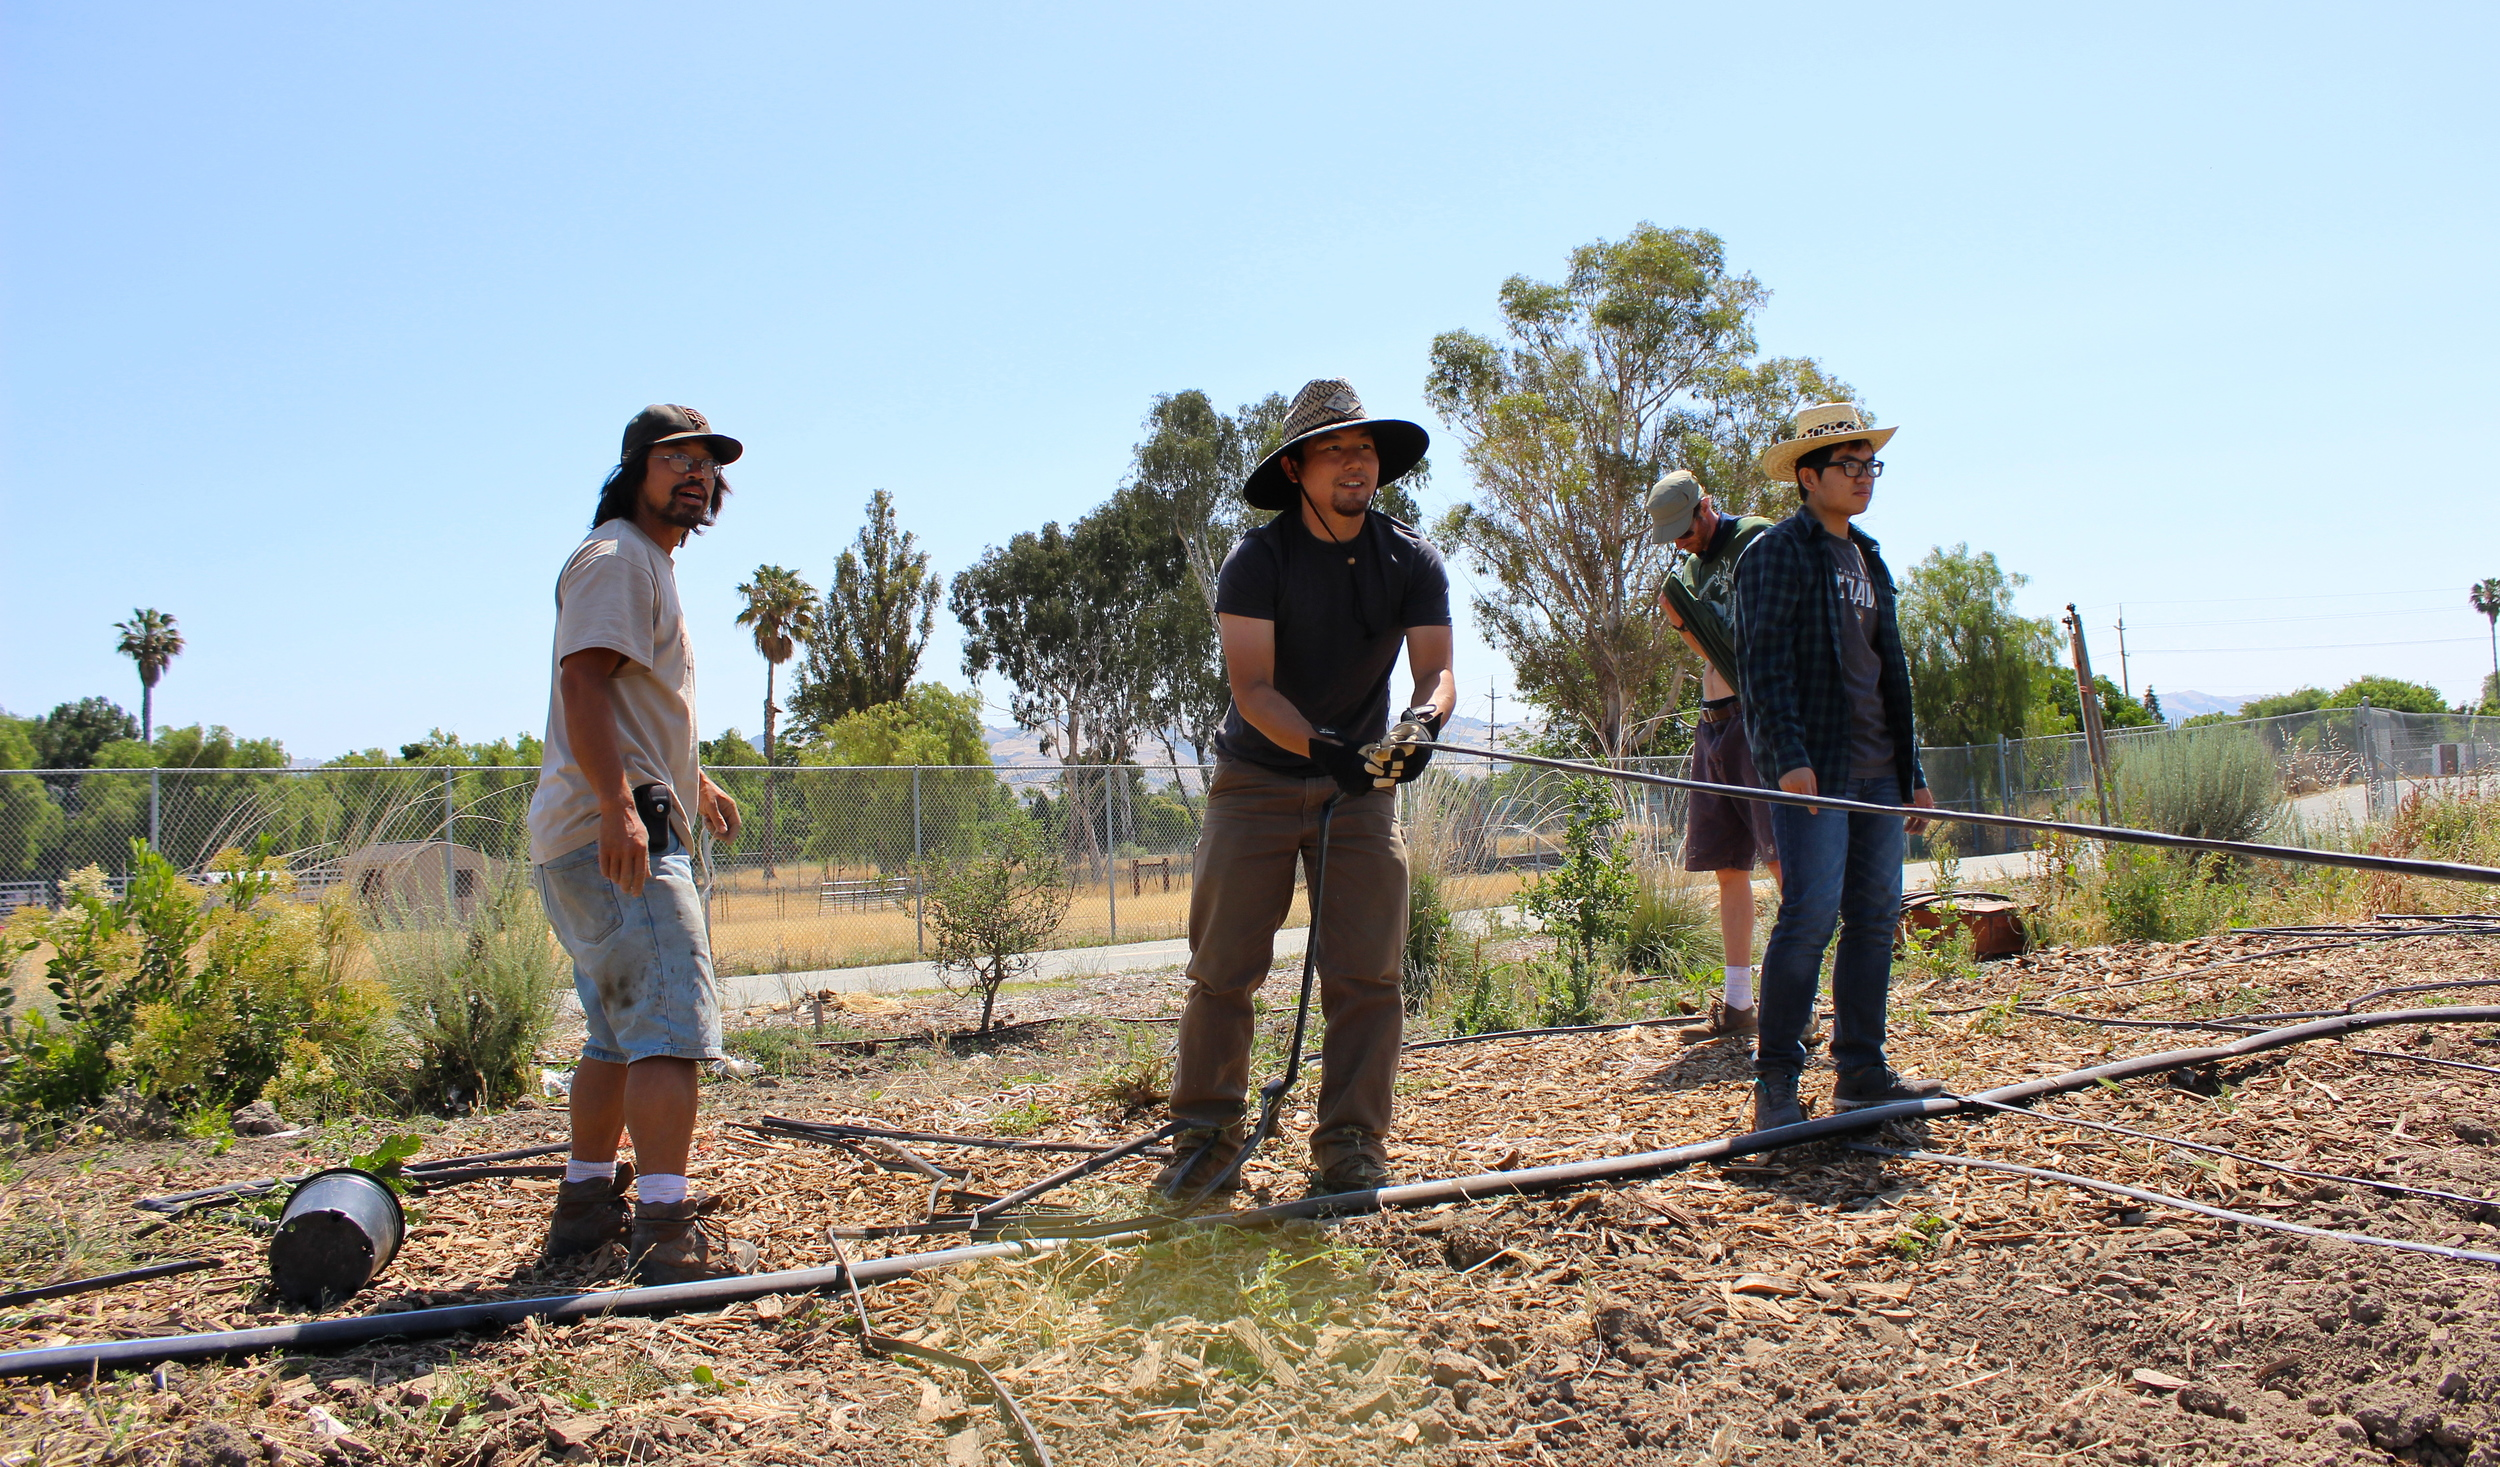 HealthCorps member, Dave, supervises as Gene lays out another irrigation line.